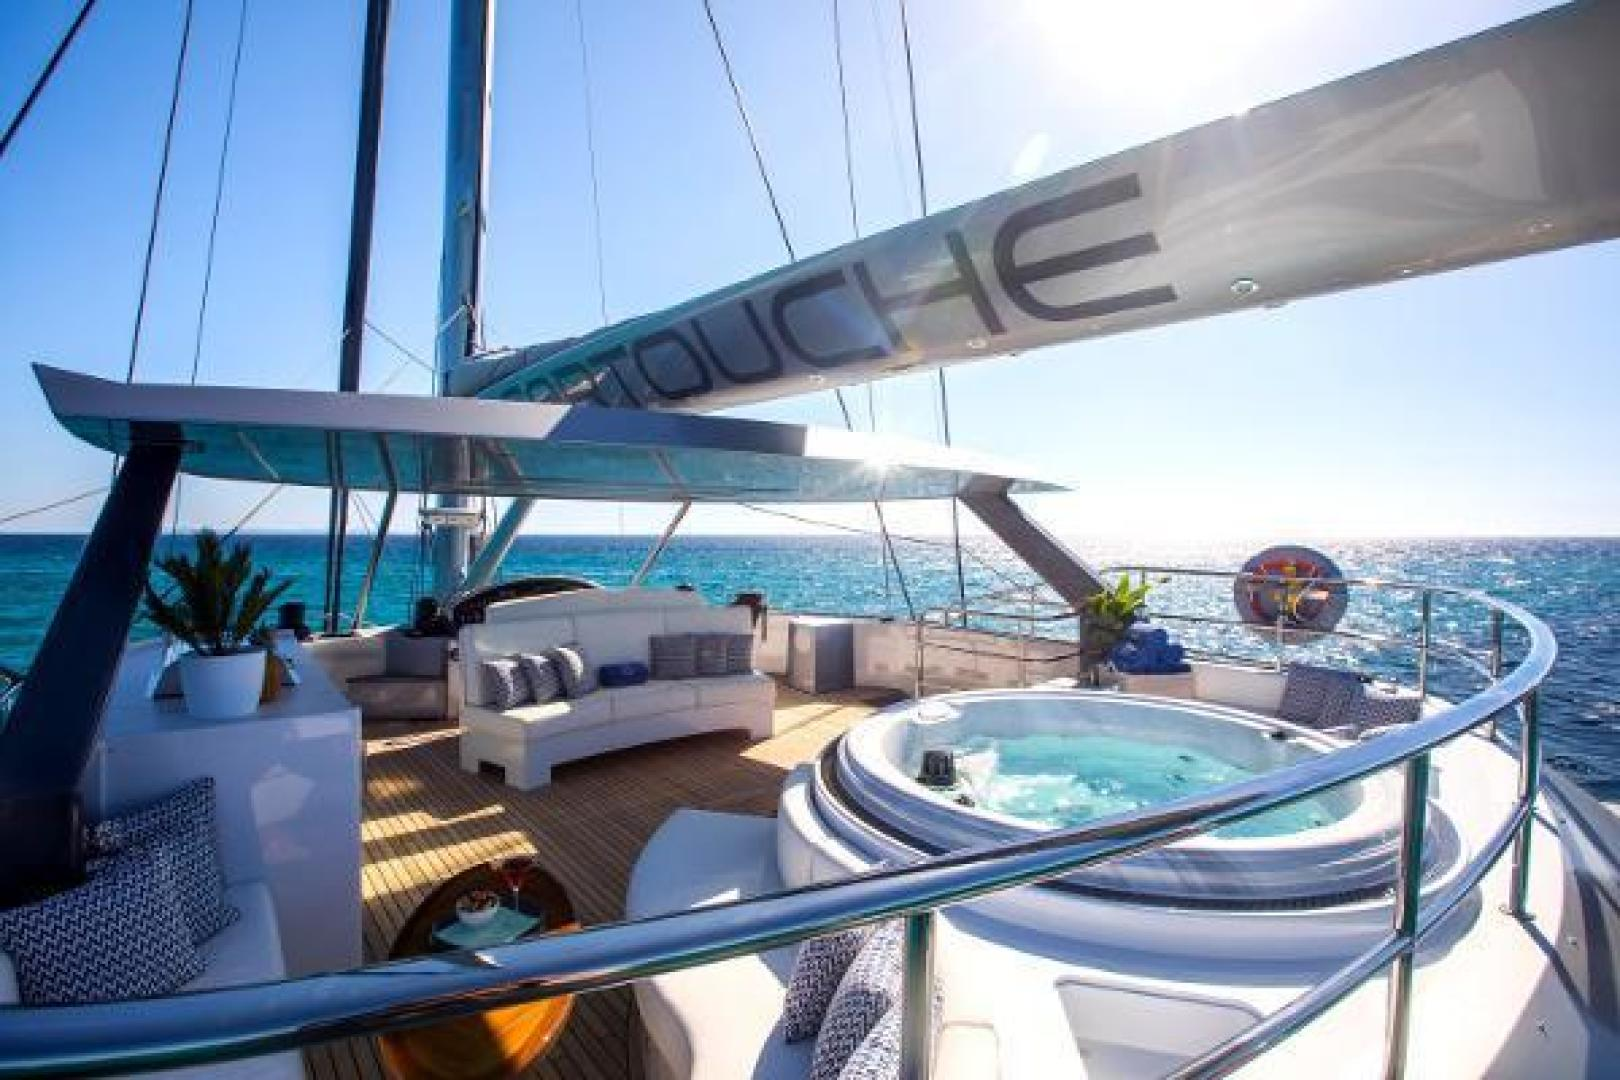 Catamaran-Blue Coast Yachts  2011-CARTOUCHE Antigua & Barbuda-1296537 | Thumbnail